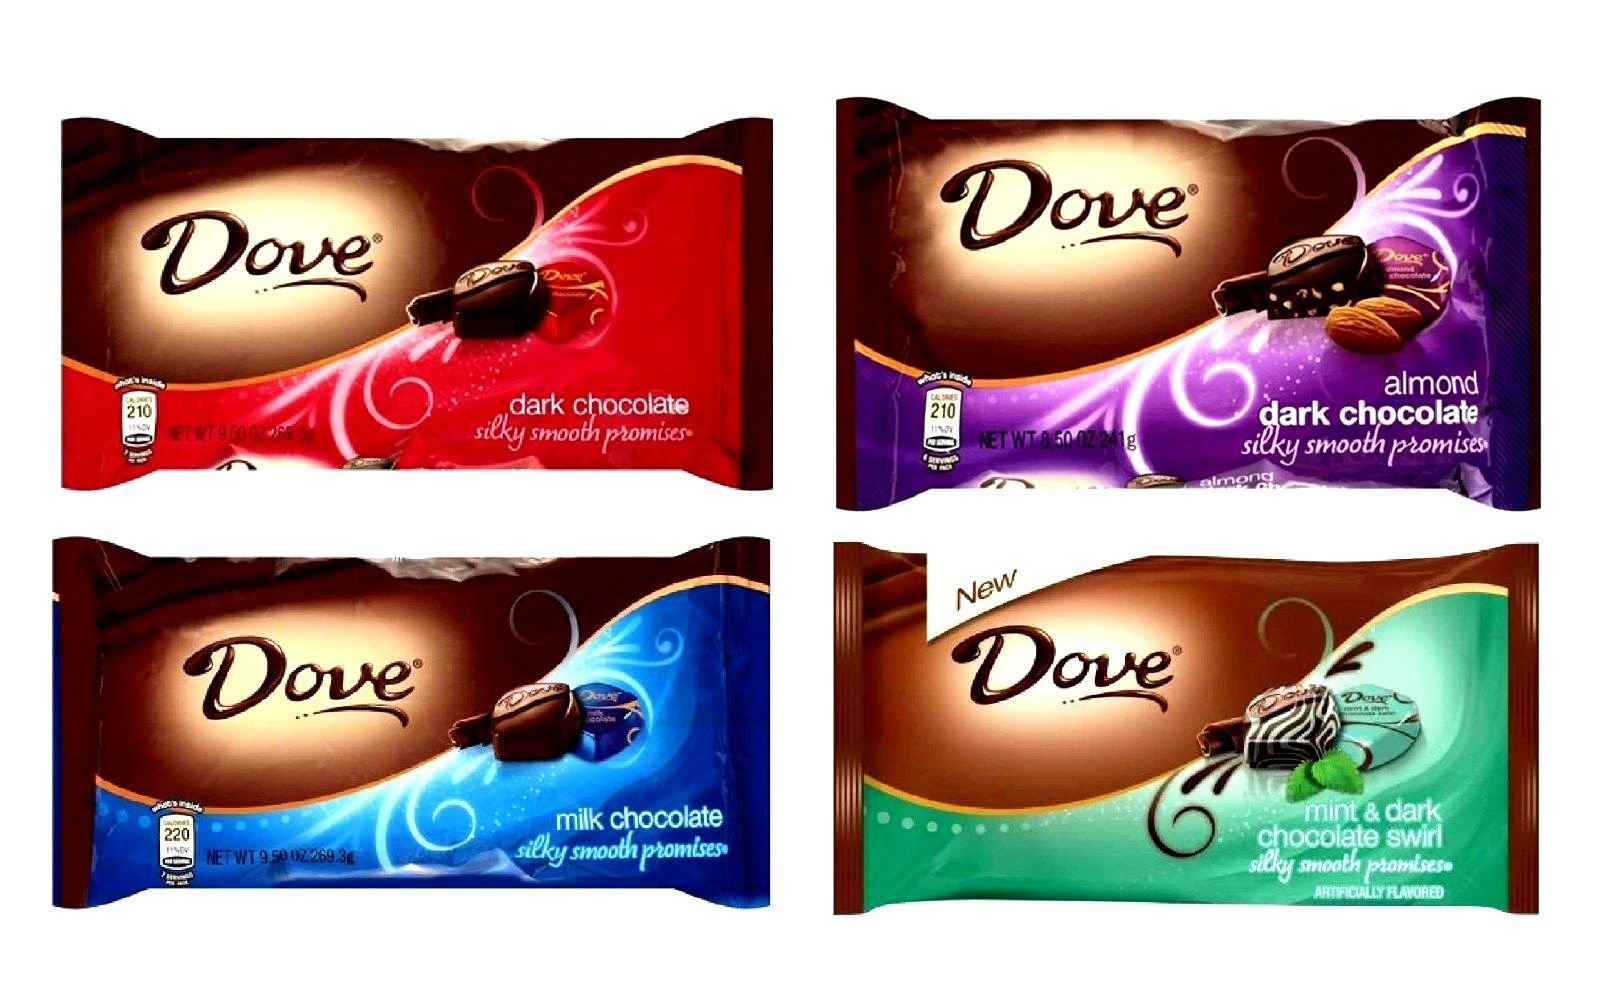 DOVE Chocolate, Promises, VARIETY 4 PACK: 1 Package of DARK CHOCOLATE 8.87 oz, 1 Package of MILK CHOCOLATE 8.87 oz, 1 Package of ALMOND DARK CHOCOLATE 7.94 oz, 1 Package of MINT & DARK CHOCOLATE SWIRL. 7.94 oz packages. Each package contains about 35 deli by Dove